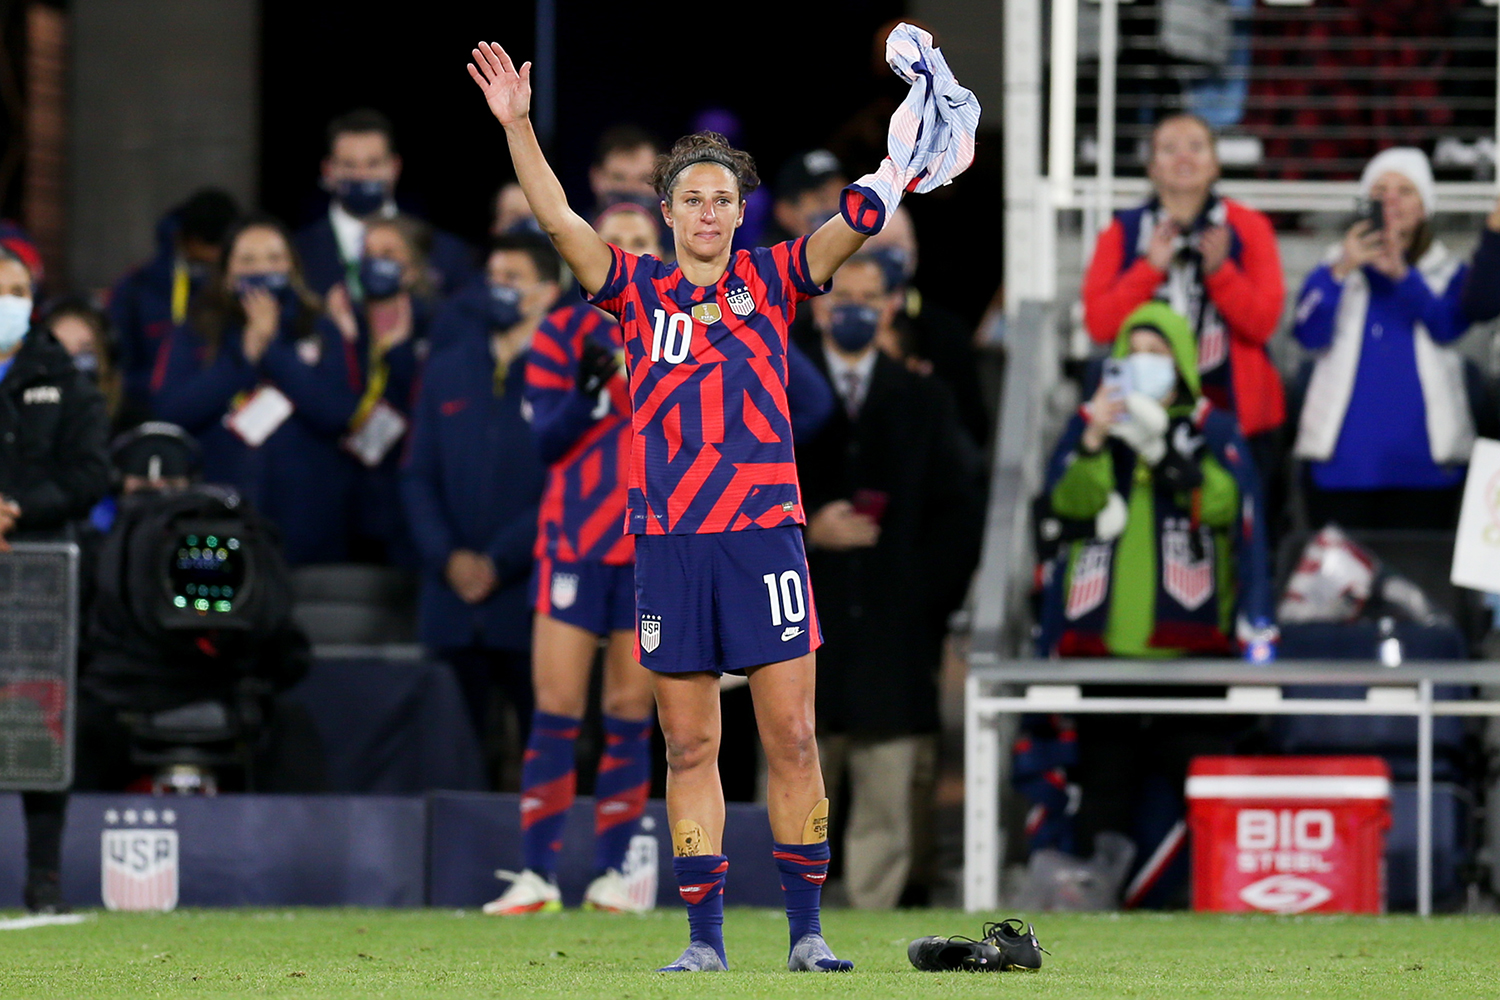 SAINT PAUL, MN - OCTOBER 26: United States forward Carli Lloyd (10) acknowledges the fans as she takes a lap after her final game, a friendly soccer match between Korea Republic and the United States on Oct 26, 2021 at Allianz Field in Saint Paul, MN.